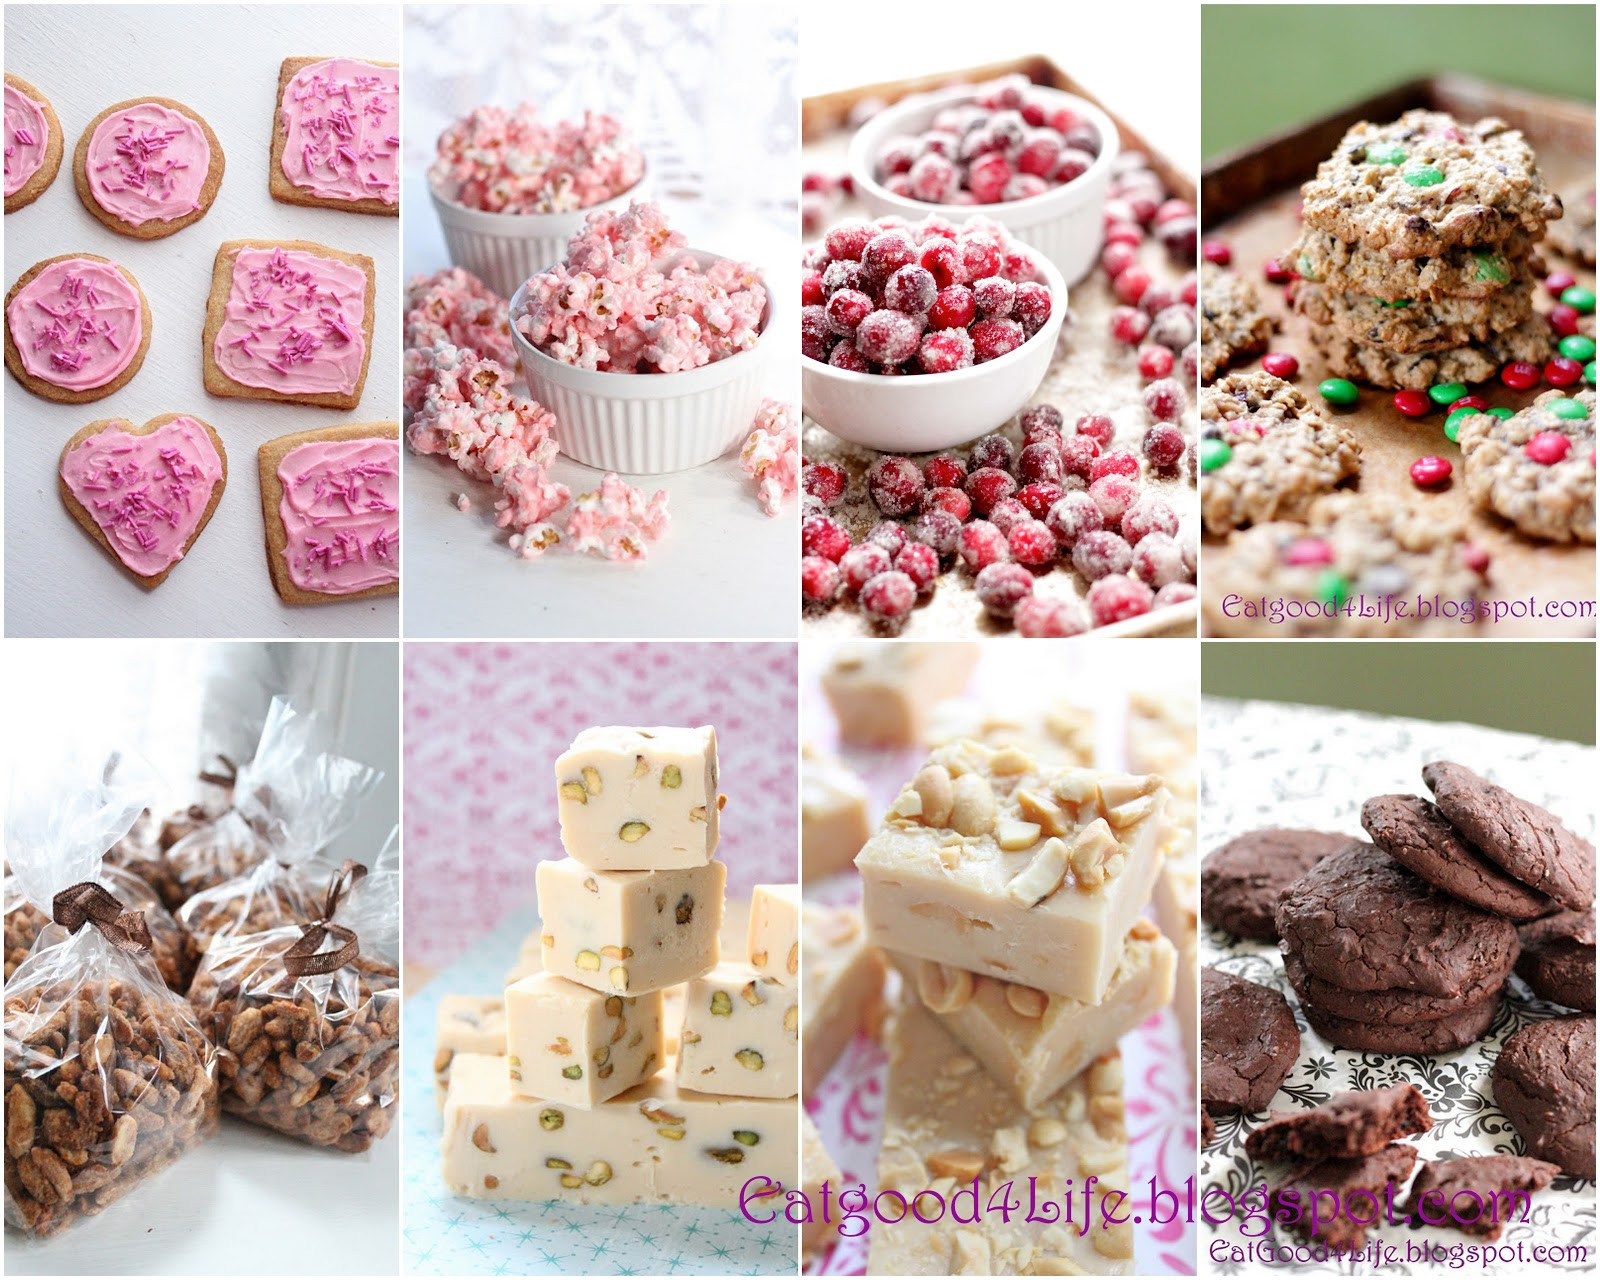 Baking Gifts For Christmas  My Top 16 Christmas t baking ideas